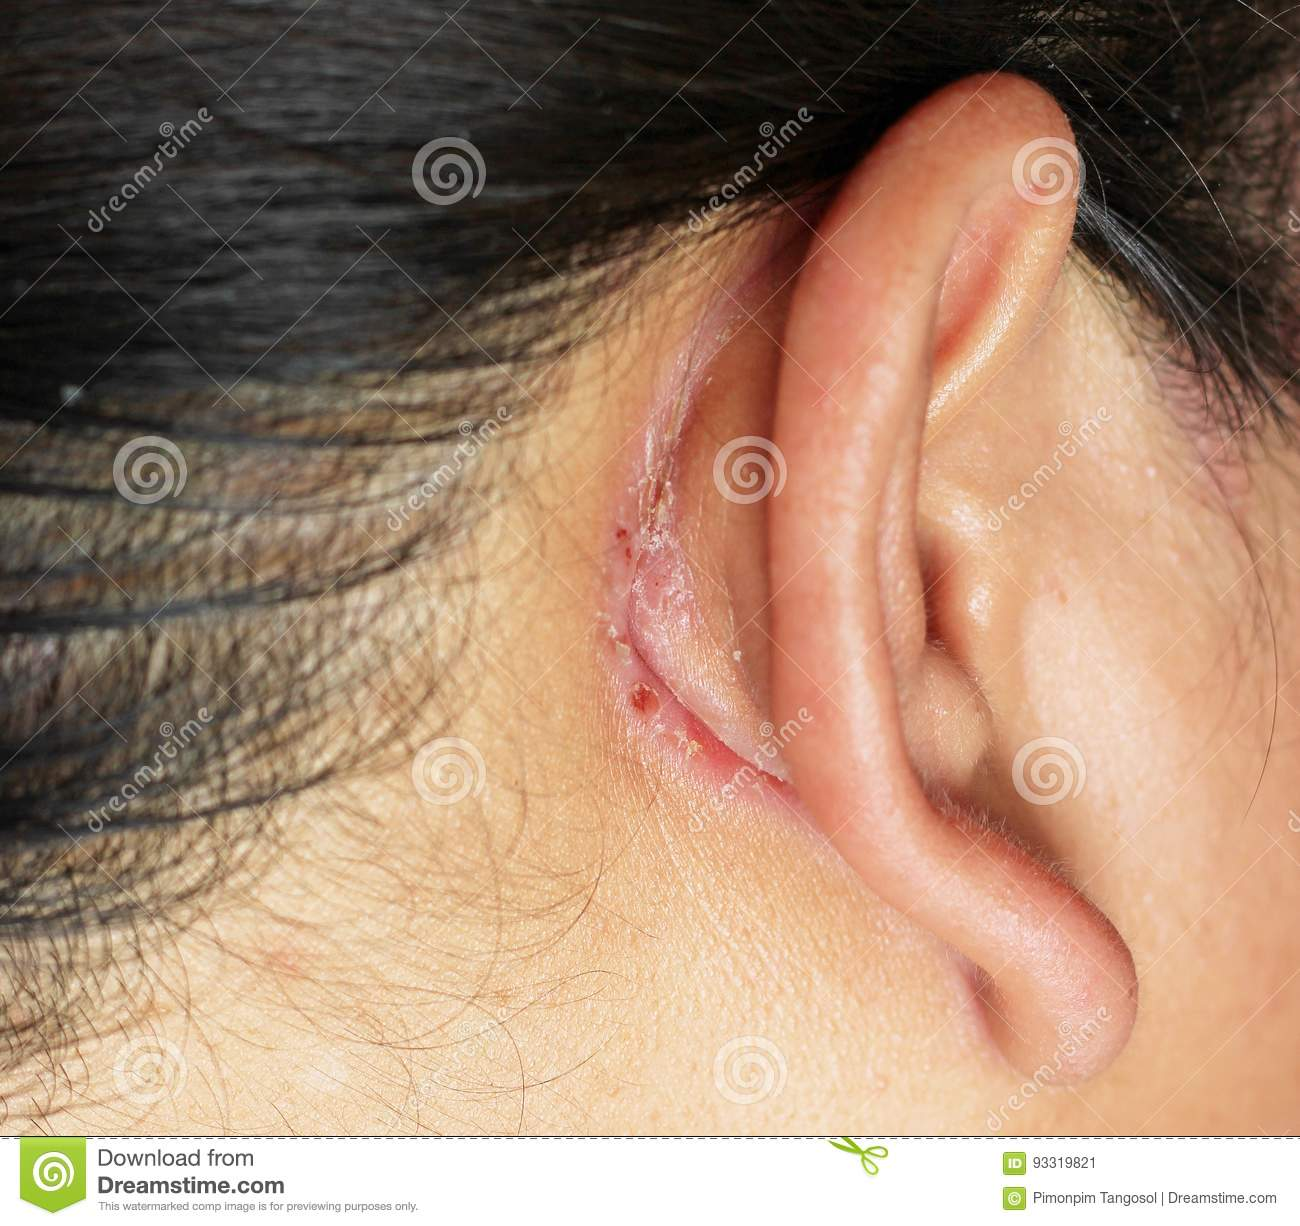 Wound behind ear stock image. Image of head, care, human - 93319821